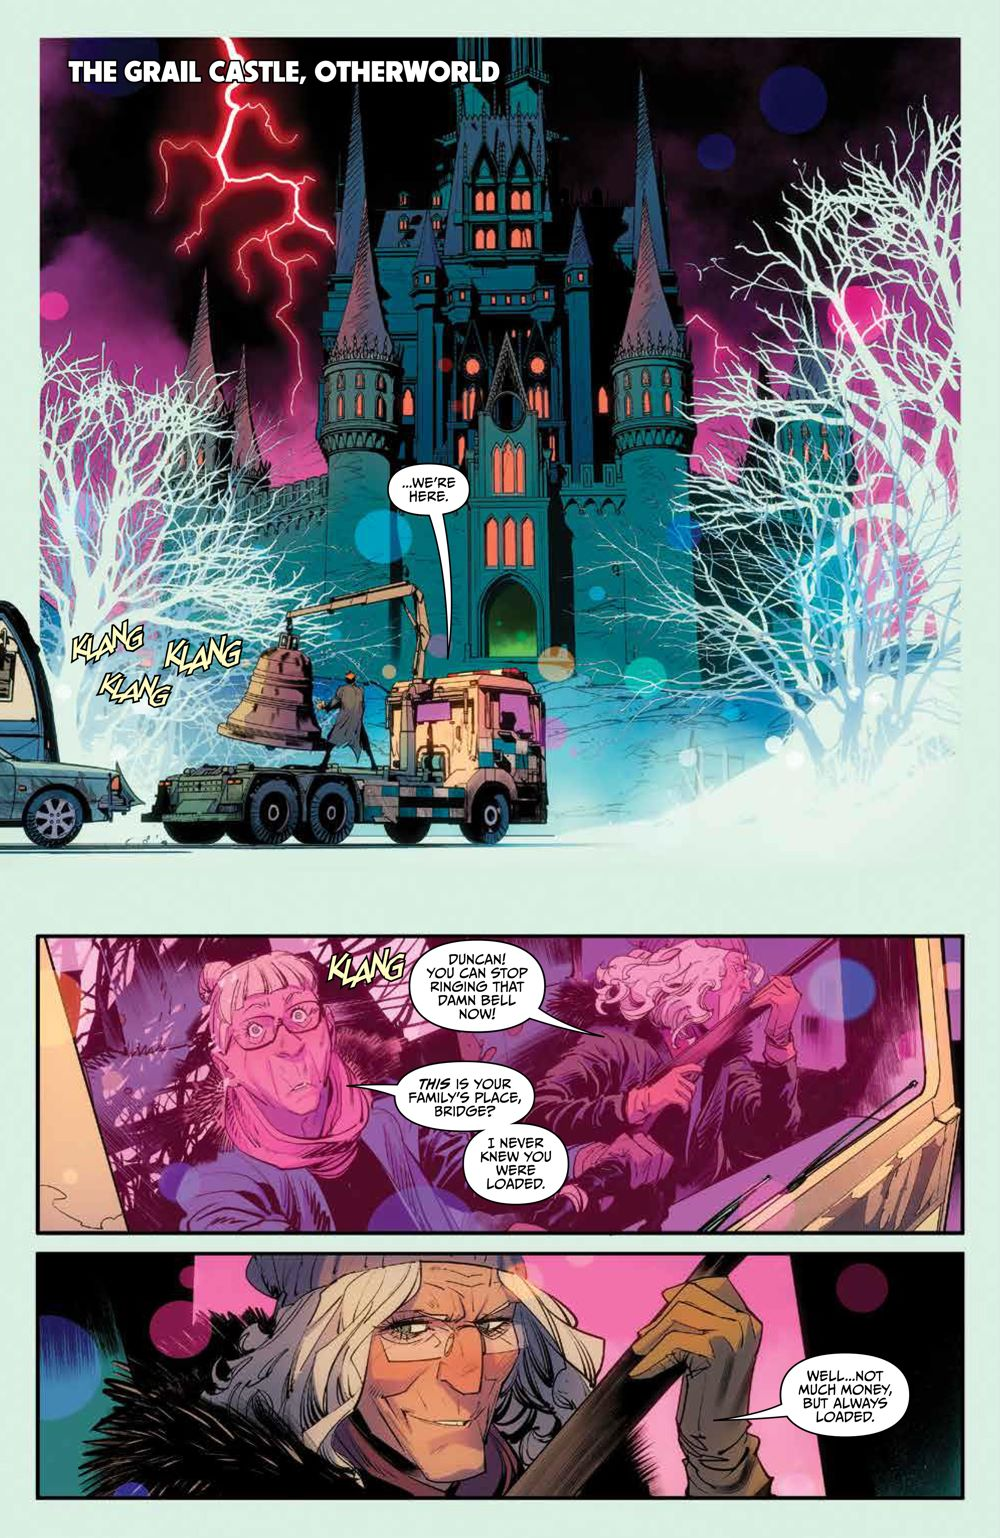 OnceFuture_020_PRESS_4 ComicList Previews: ONCE AND FUTURE #20